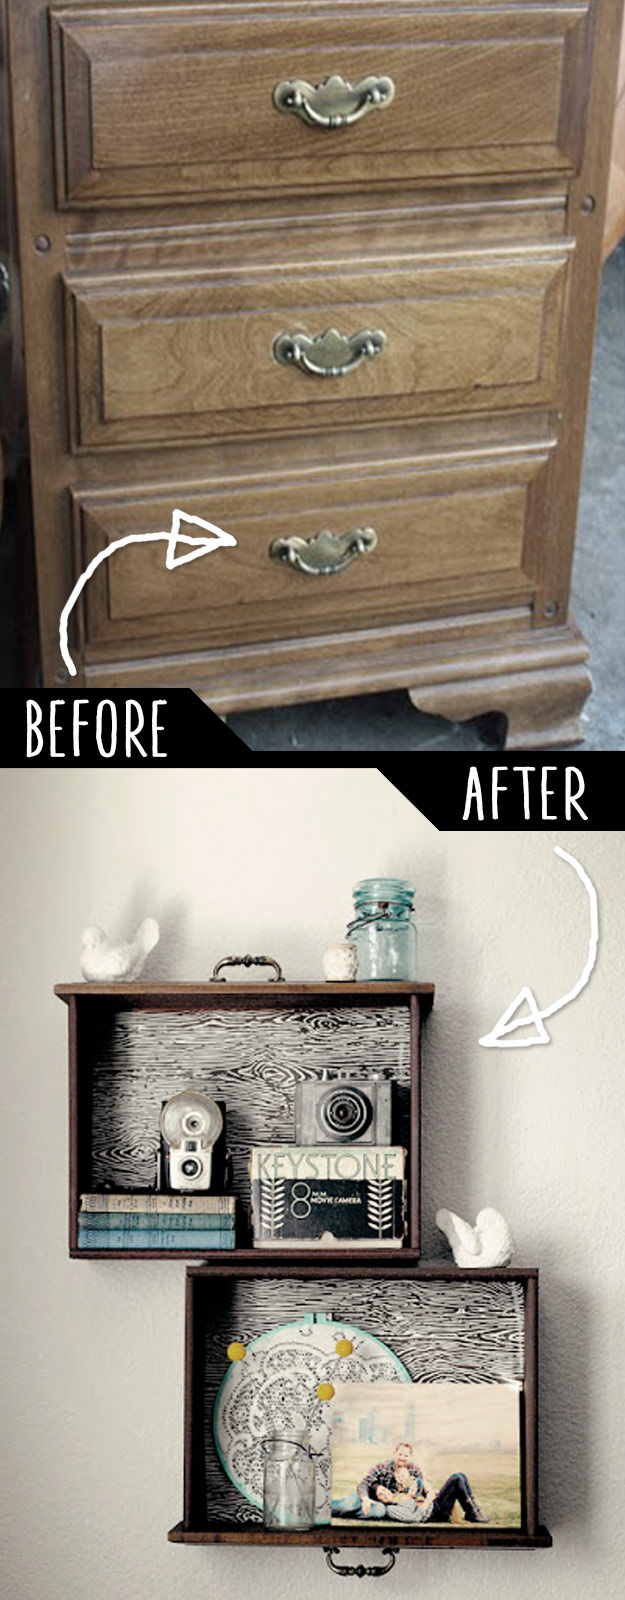 39 clever diy furniture hacks diy joy. Black Bedroom Furniture Sets. Home Design Ideas